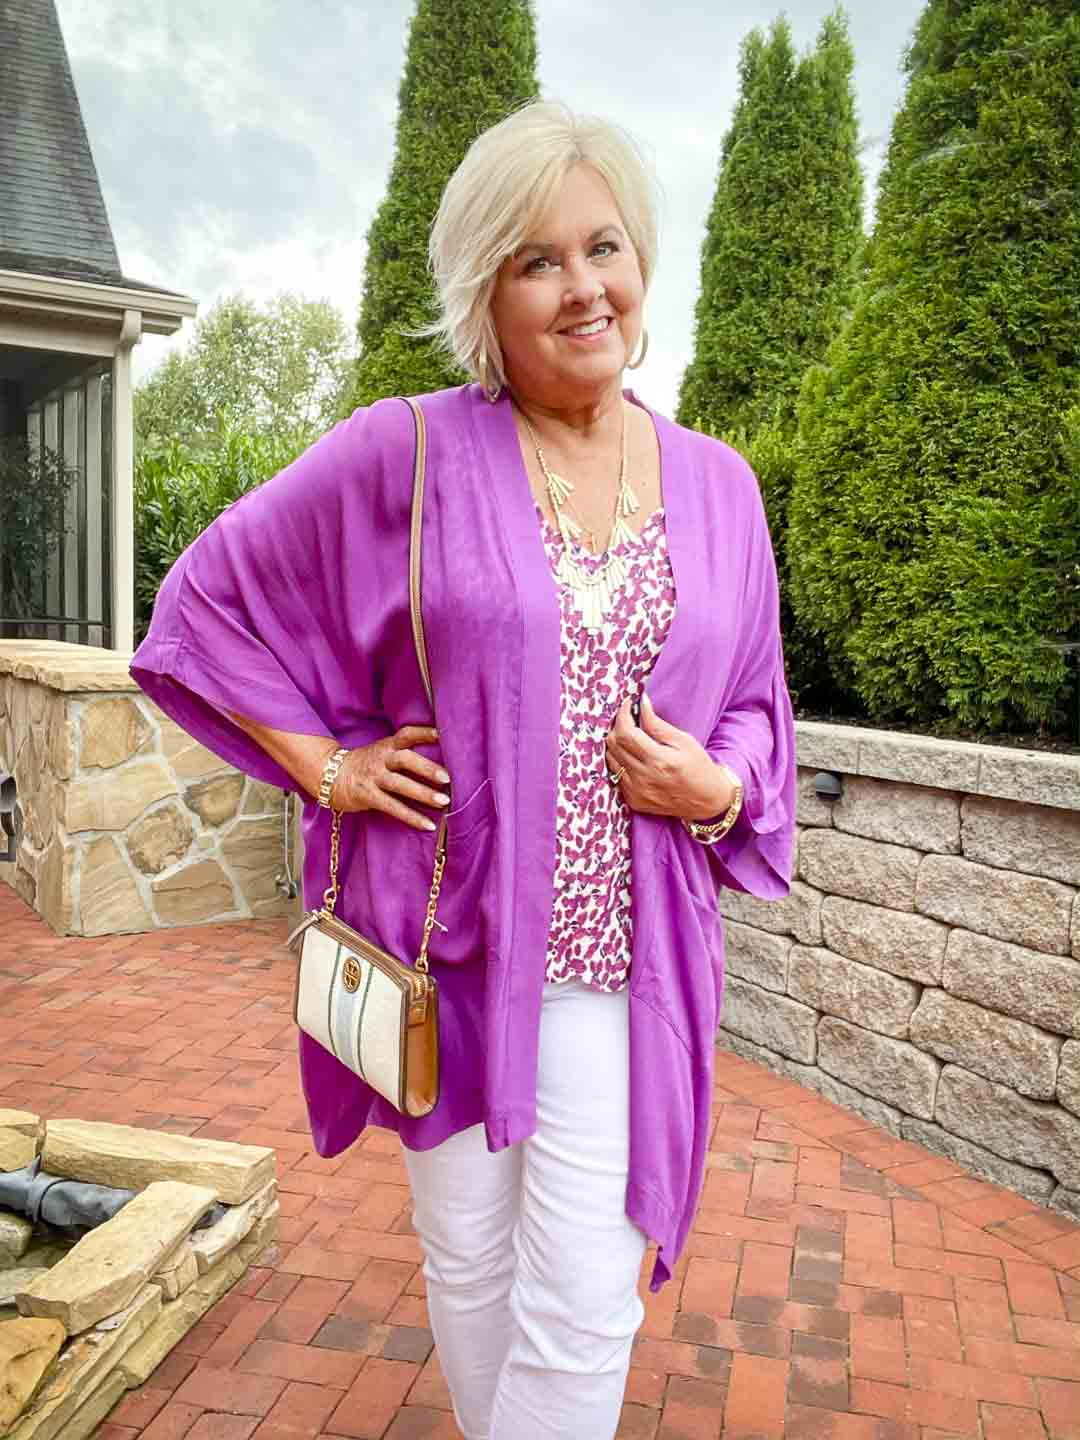 Over 40 fashion blogger, Tania Stephens is wearing a purple cardigan with white jeans